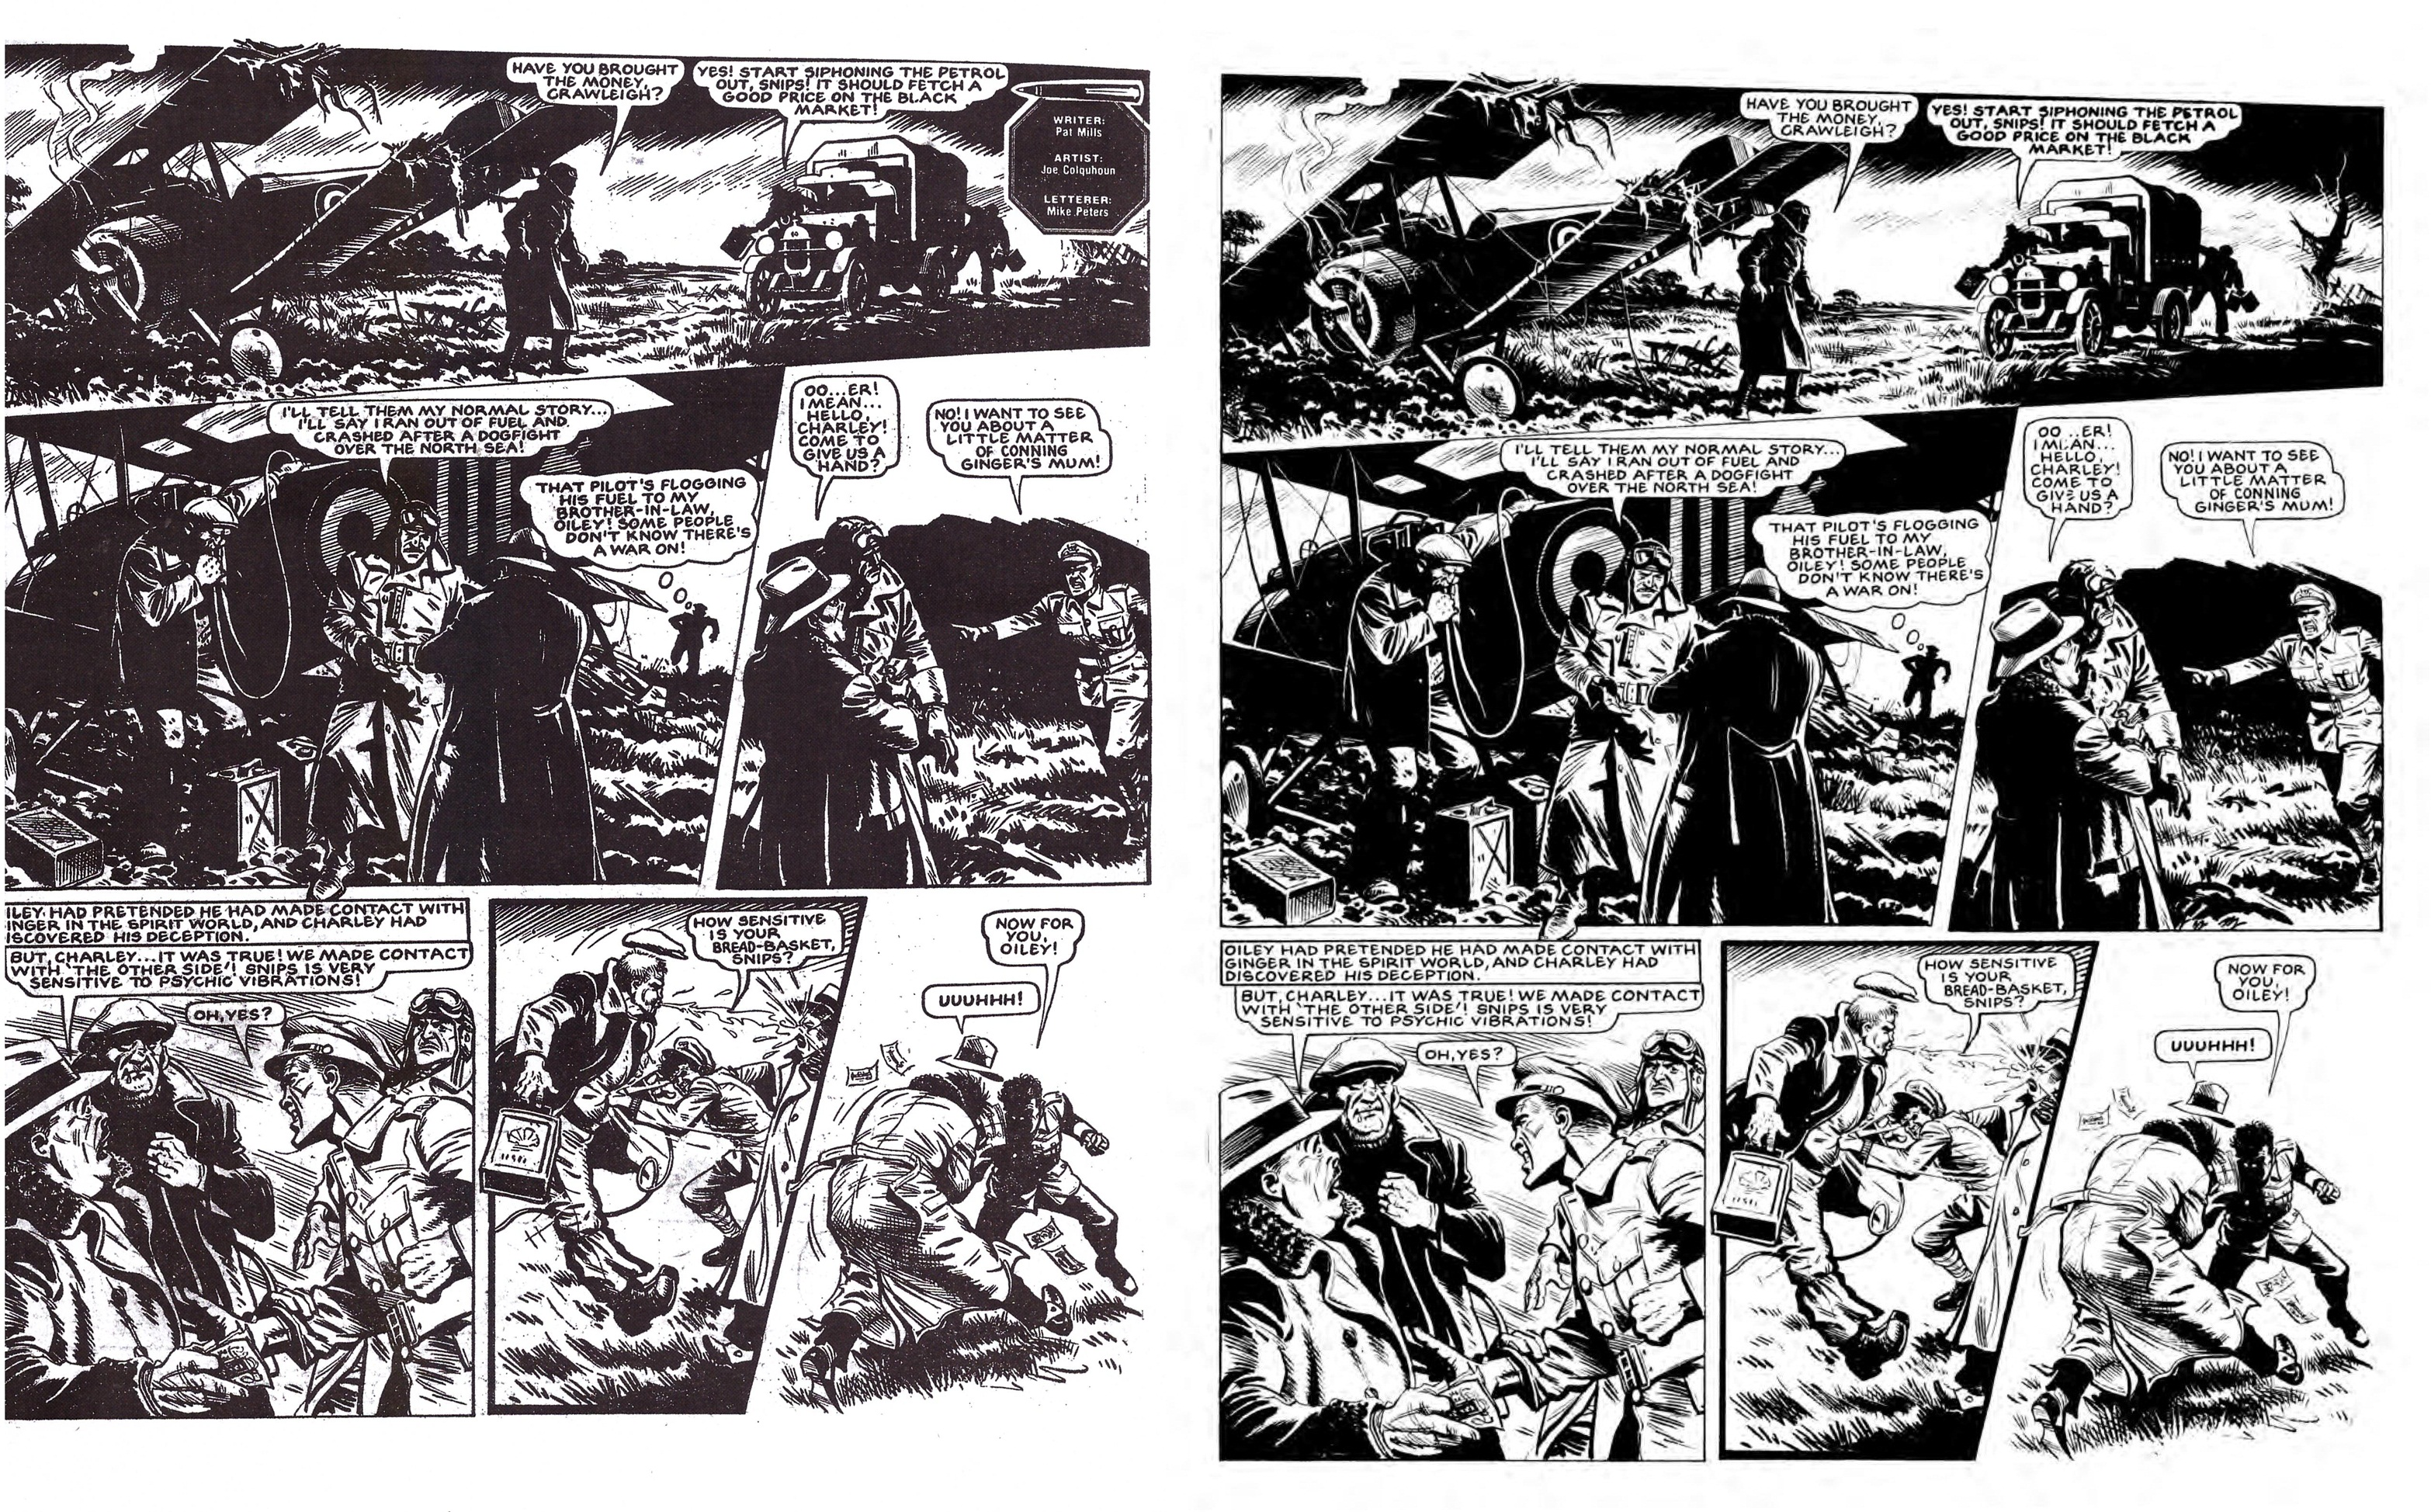 Charley's War Definitive Volume 2 Brothers in Arms review